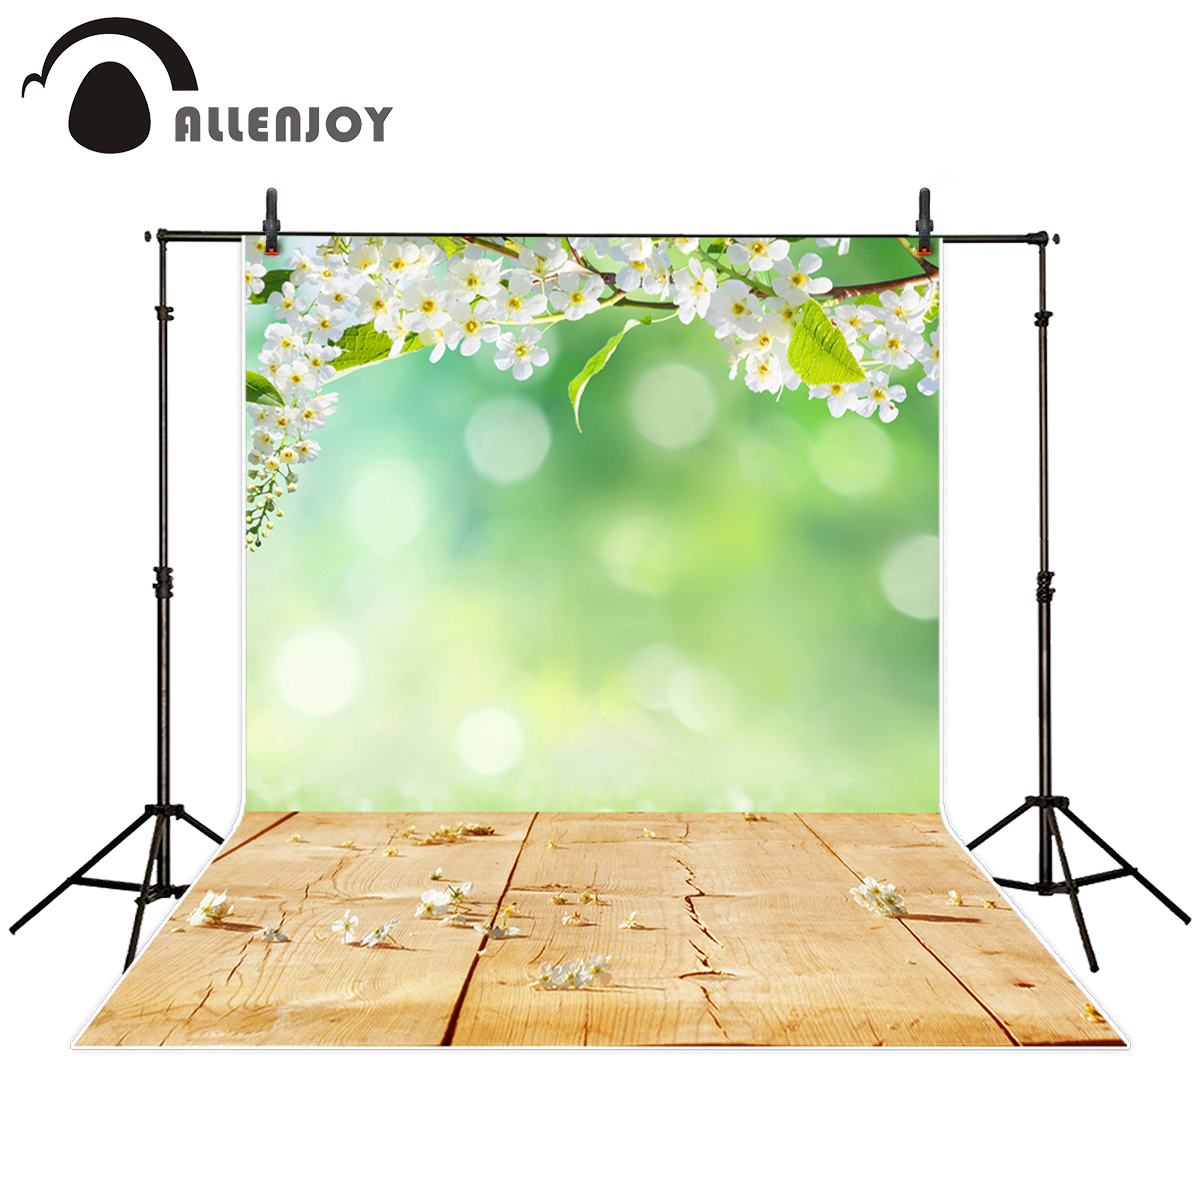 Allenjoy photography backdrop spring flower nature wooden board Bokeh background photo studio new design camera fotografica allenjoy photography background blue red abstract christmas background golden stars glitter bokeh lights backdrop photo studio